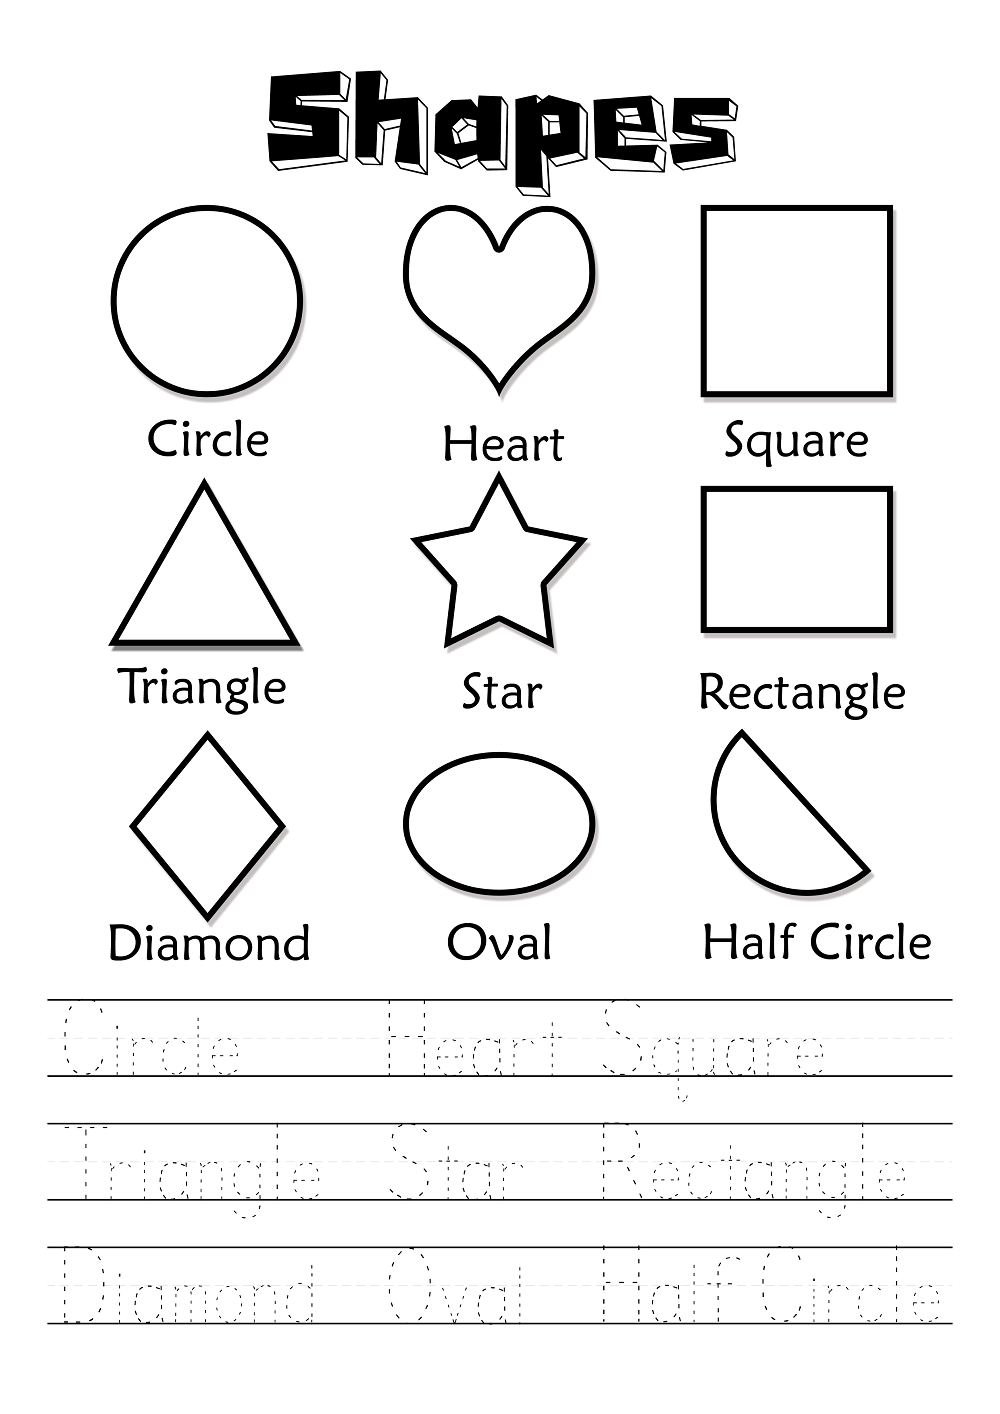 Activity Worksheets for Kids to Print | Kids Worksheets Printable